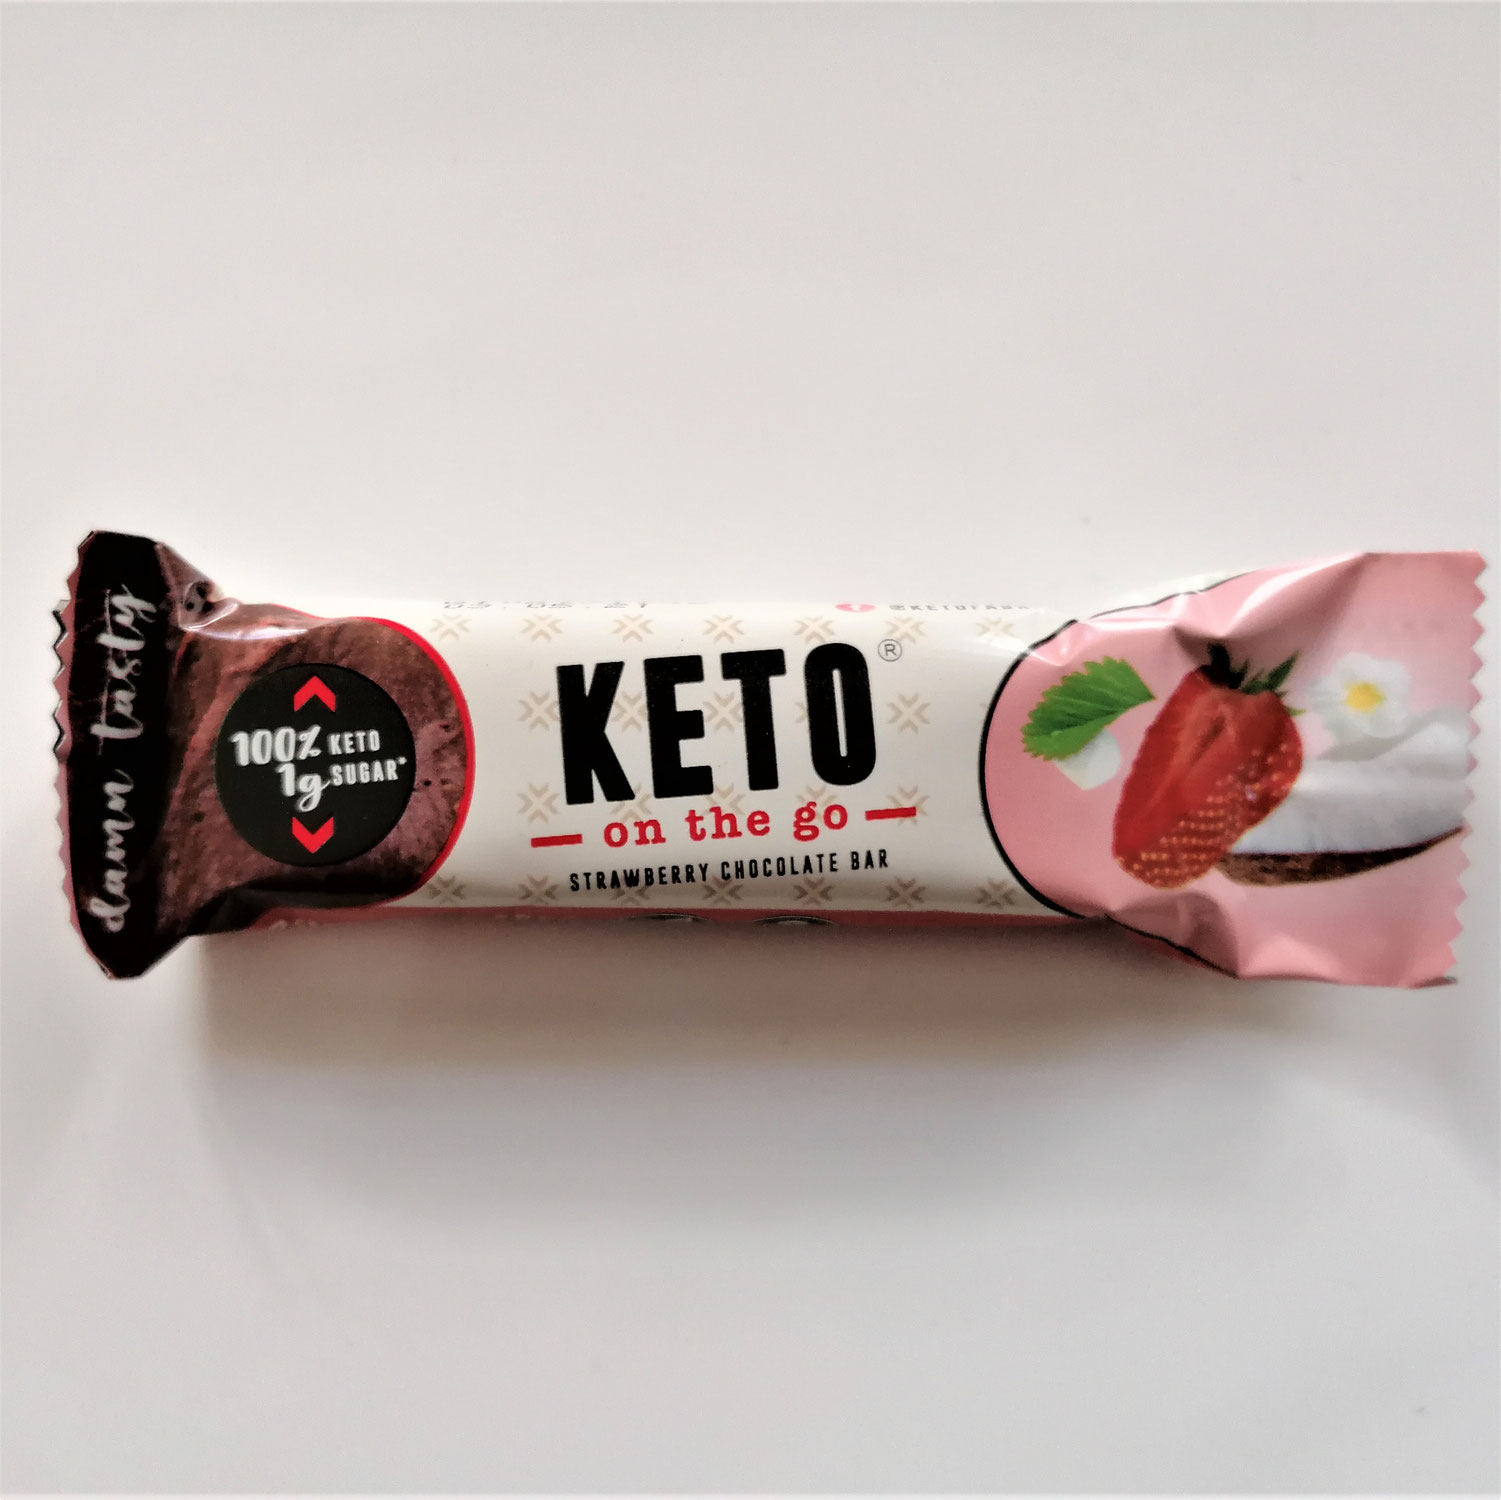 KETOFABRIK - KETO STRAWBERRY CHOCOLATE BAR: KAUM ZUCKER MIT KOKOS & ERDBEERE